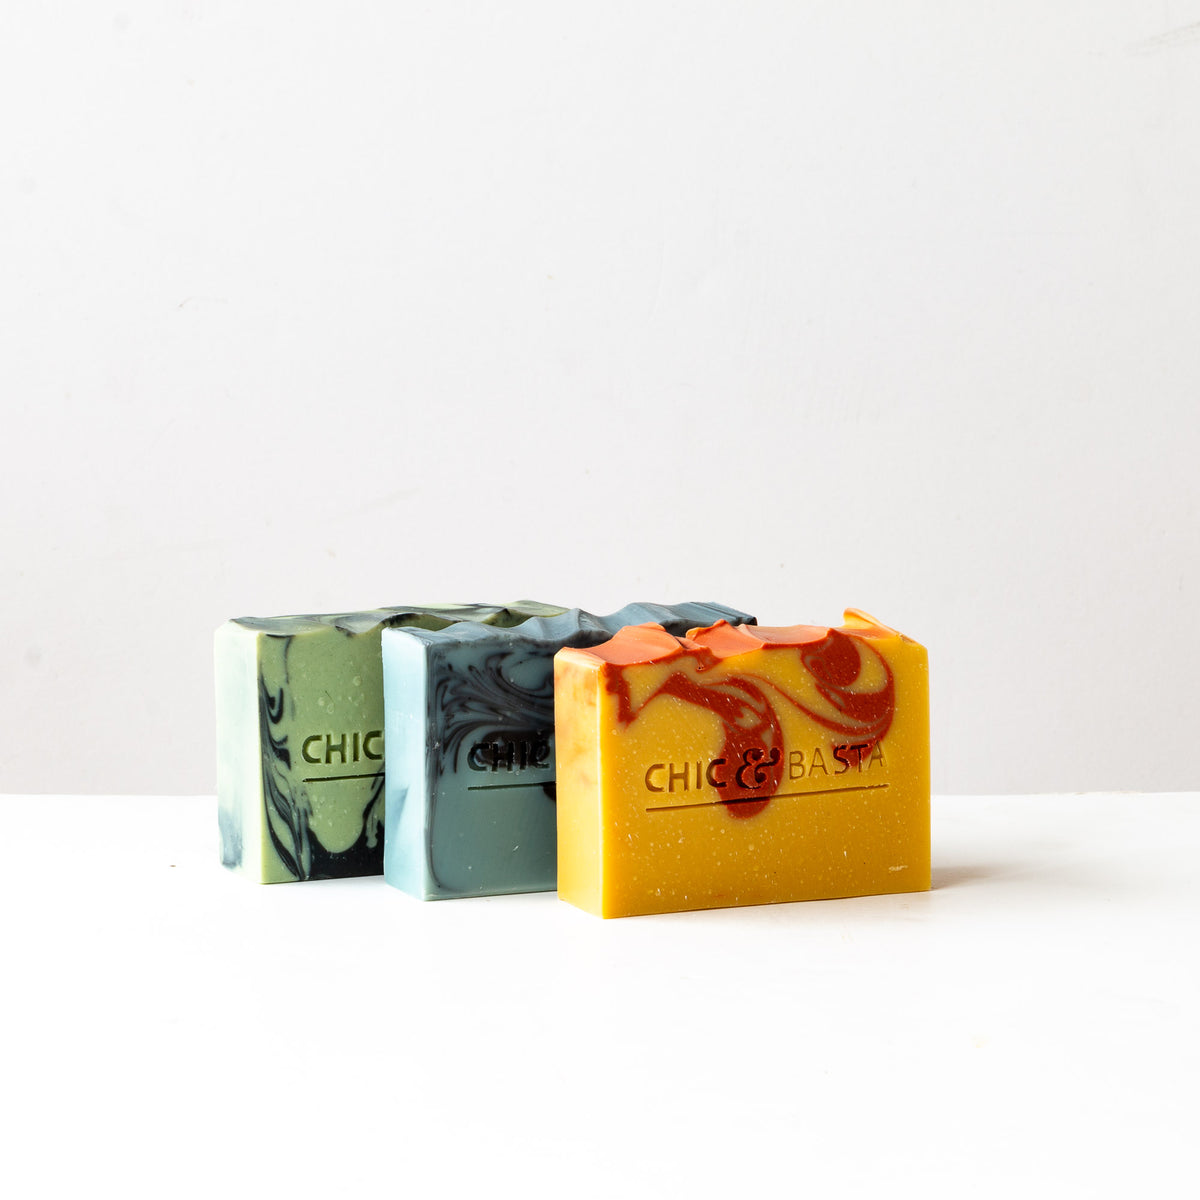 These soaps are the result of a collaboration with Amélie Roy of Ameoli.